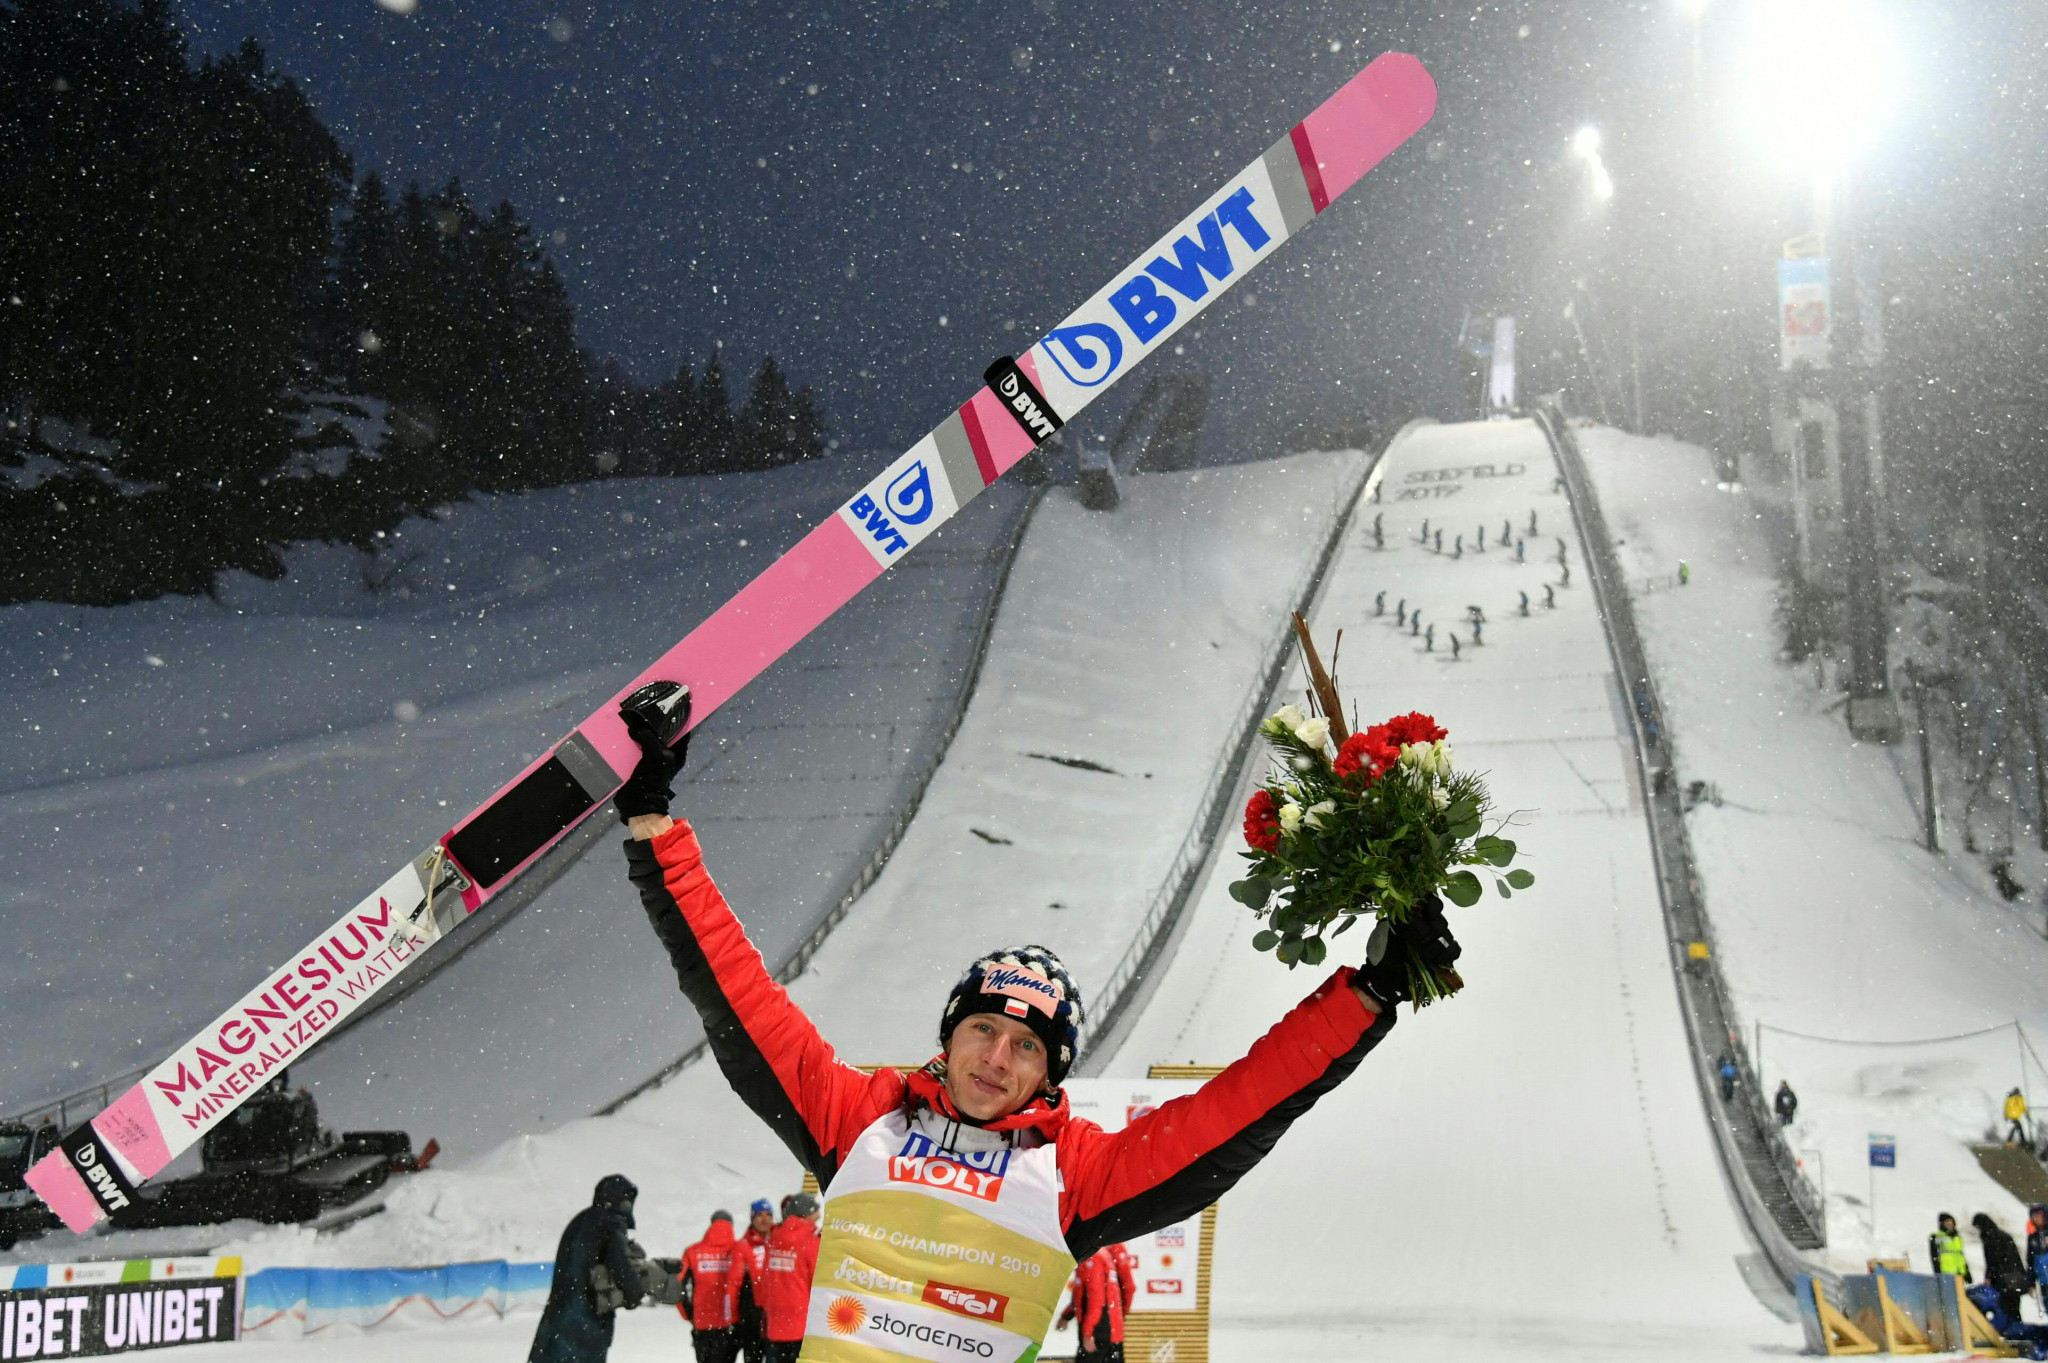 Kubacki earns shock normal hill win as Norway claim 10th straight relay crown at FIS Nordic World Ski Championships